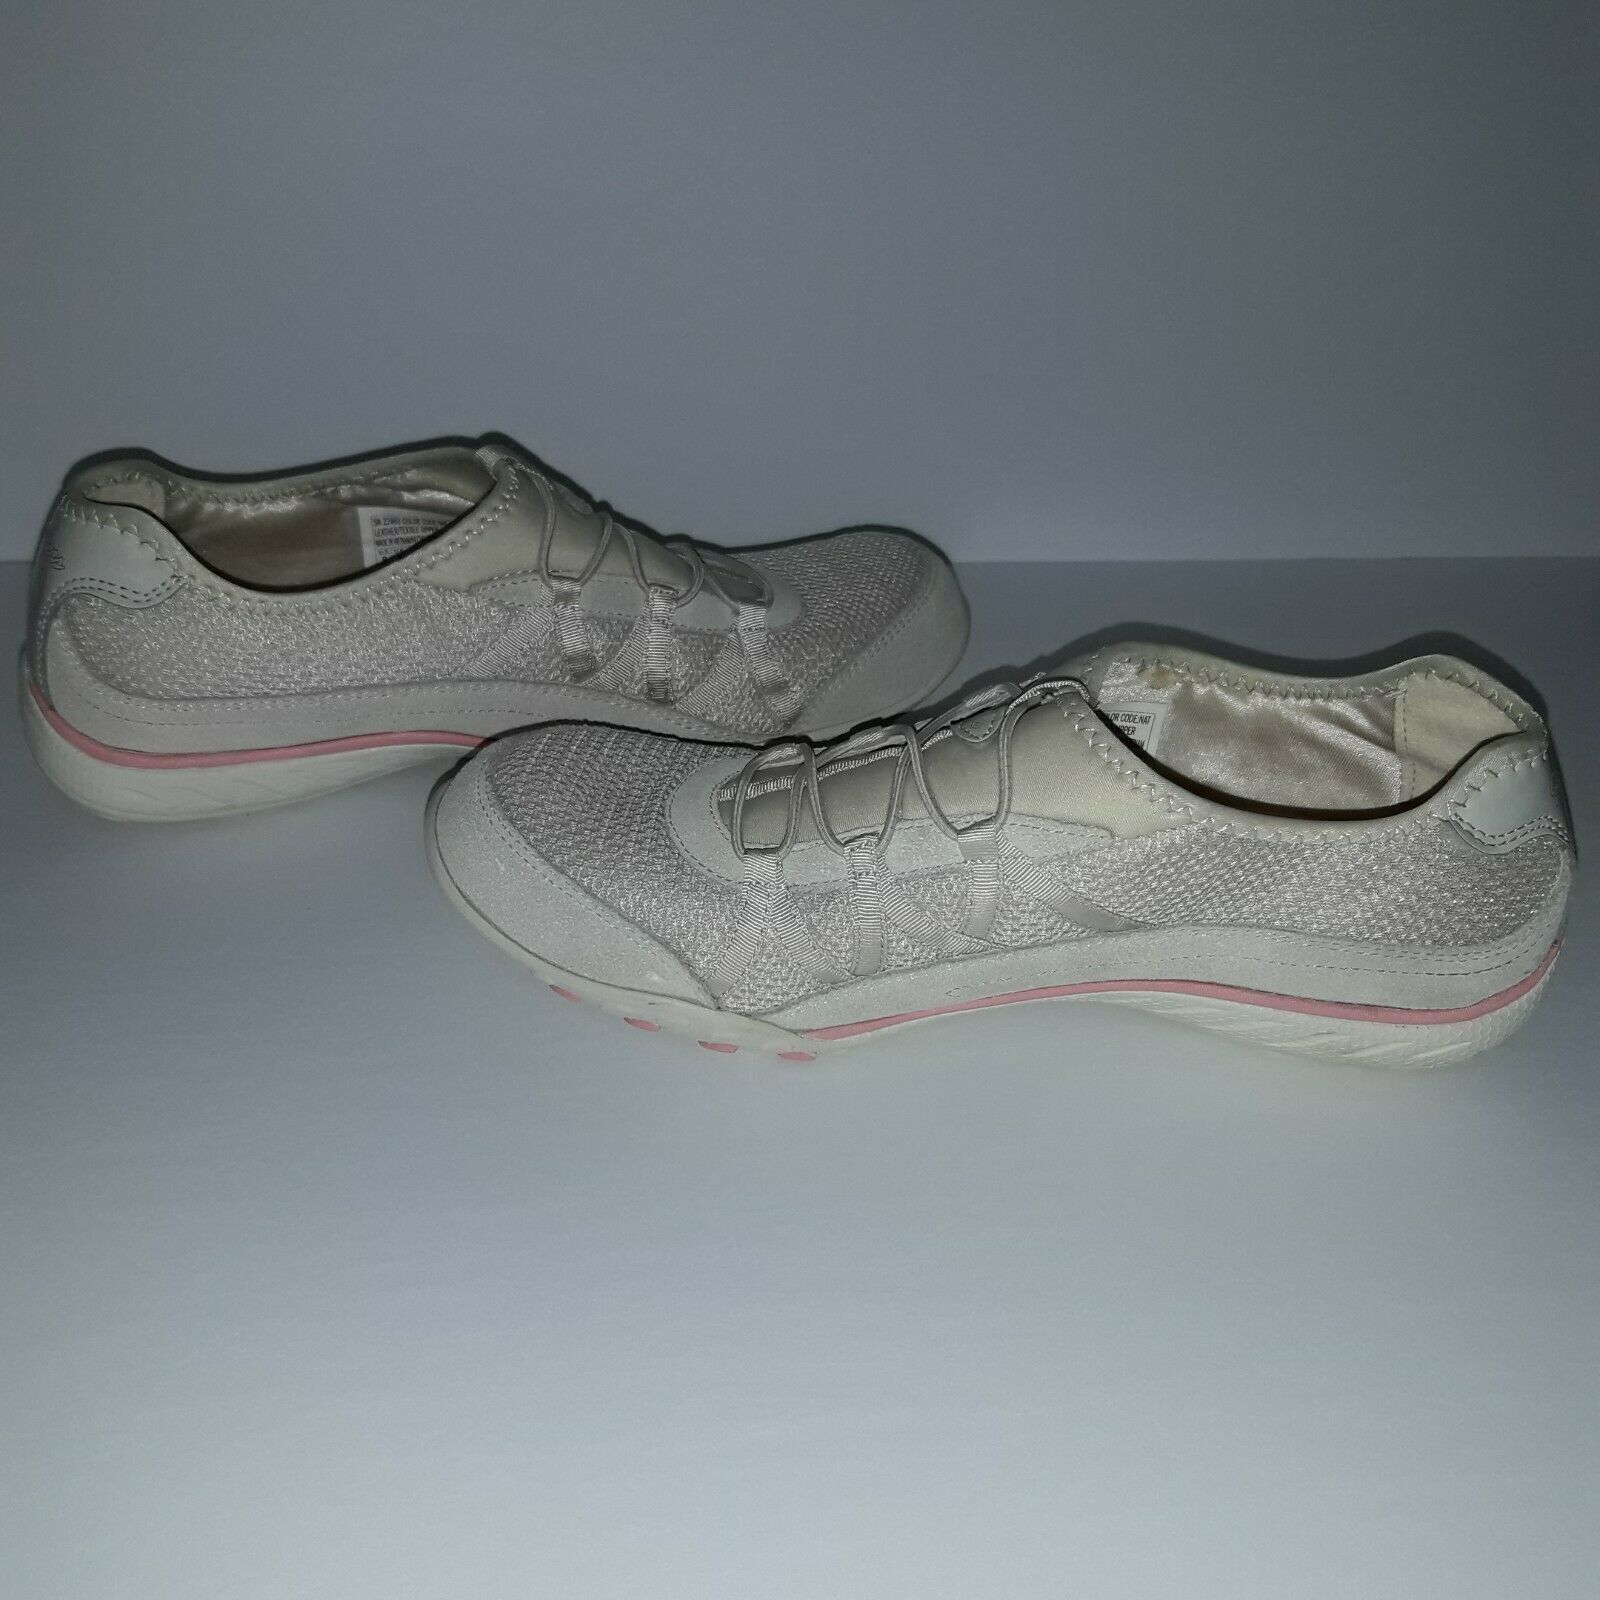 Women's Skechers Relaxed Fit Savvy Baroness shoe Size 9 Natural/Pink image 3